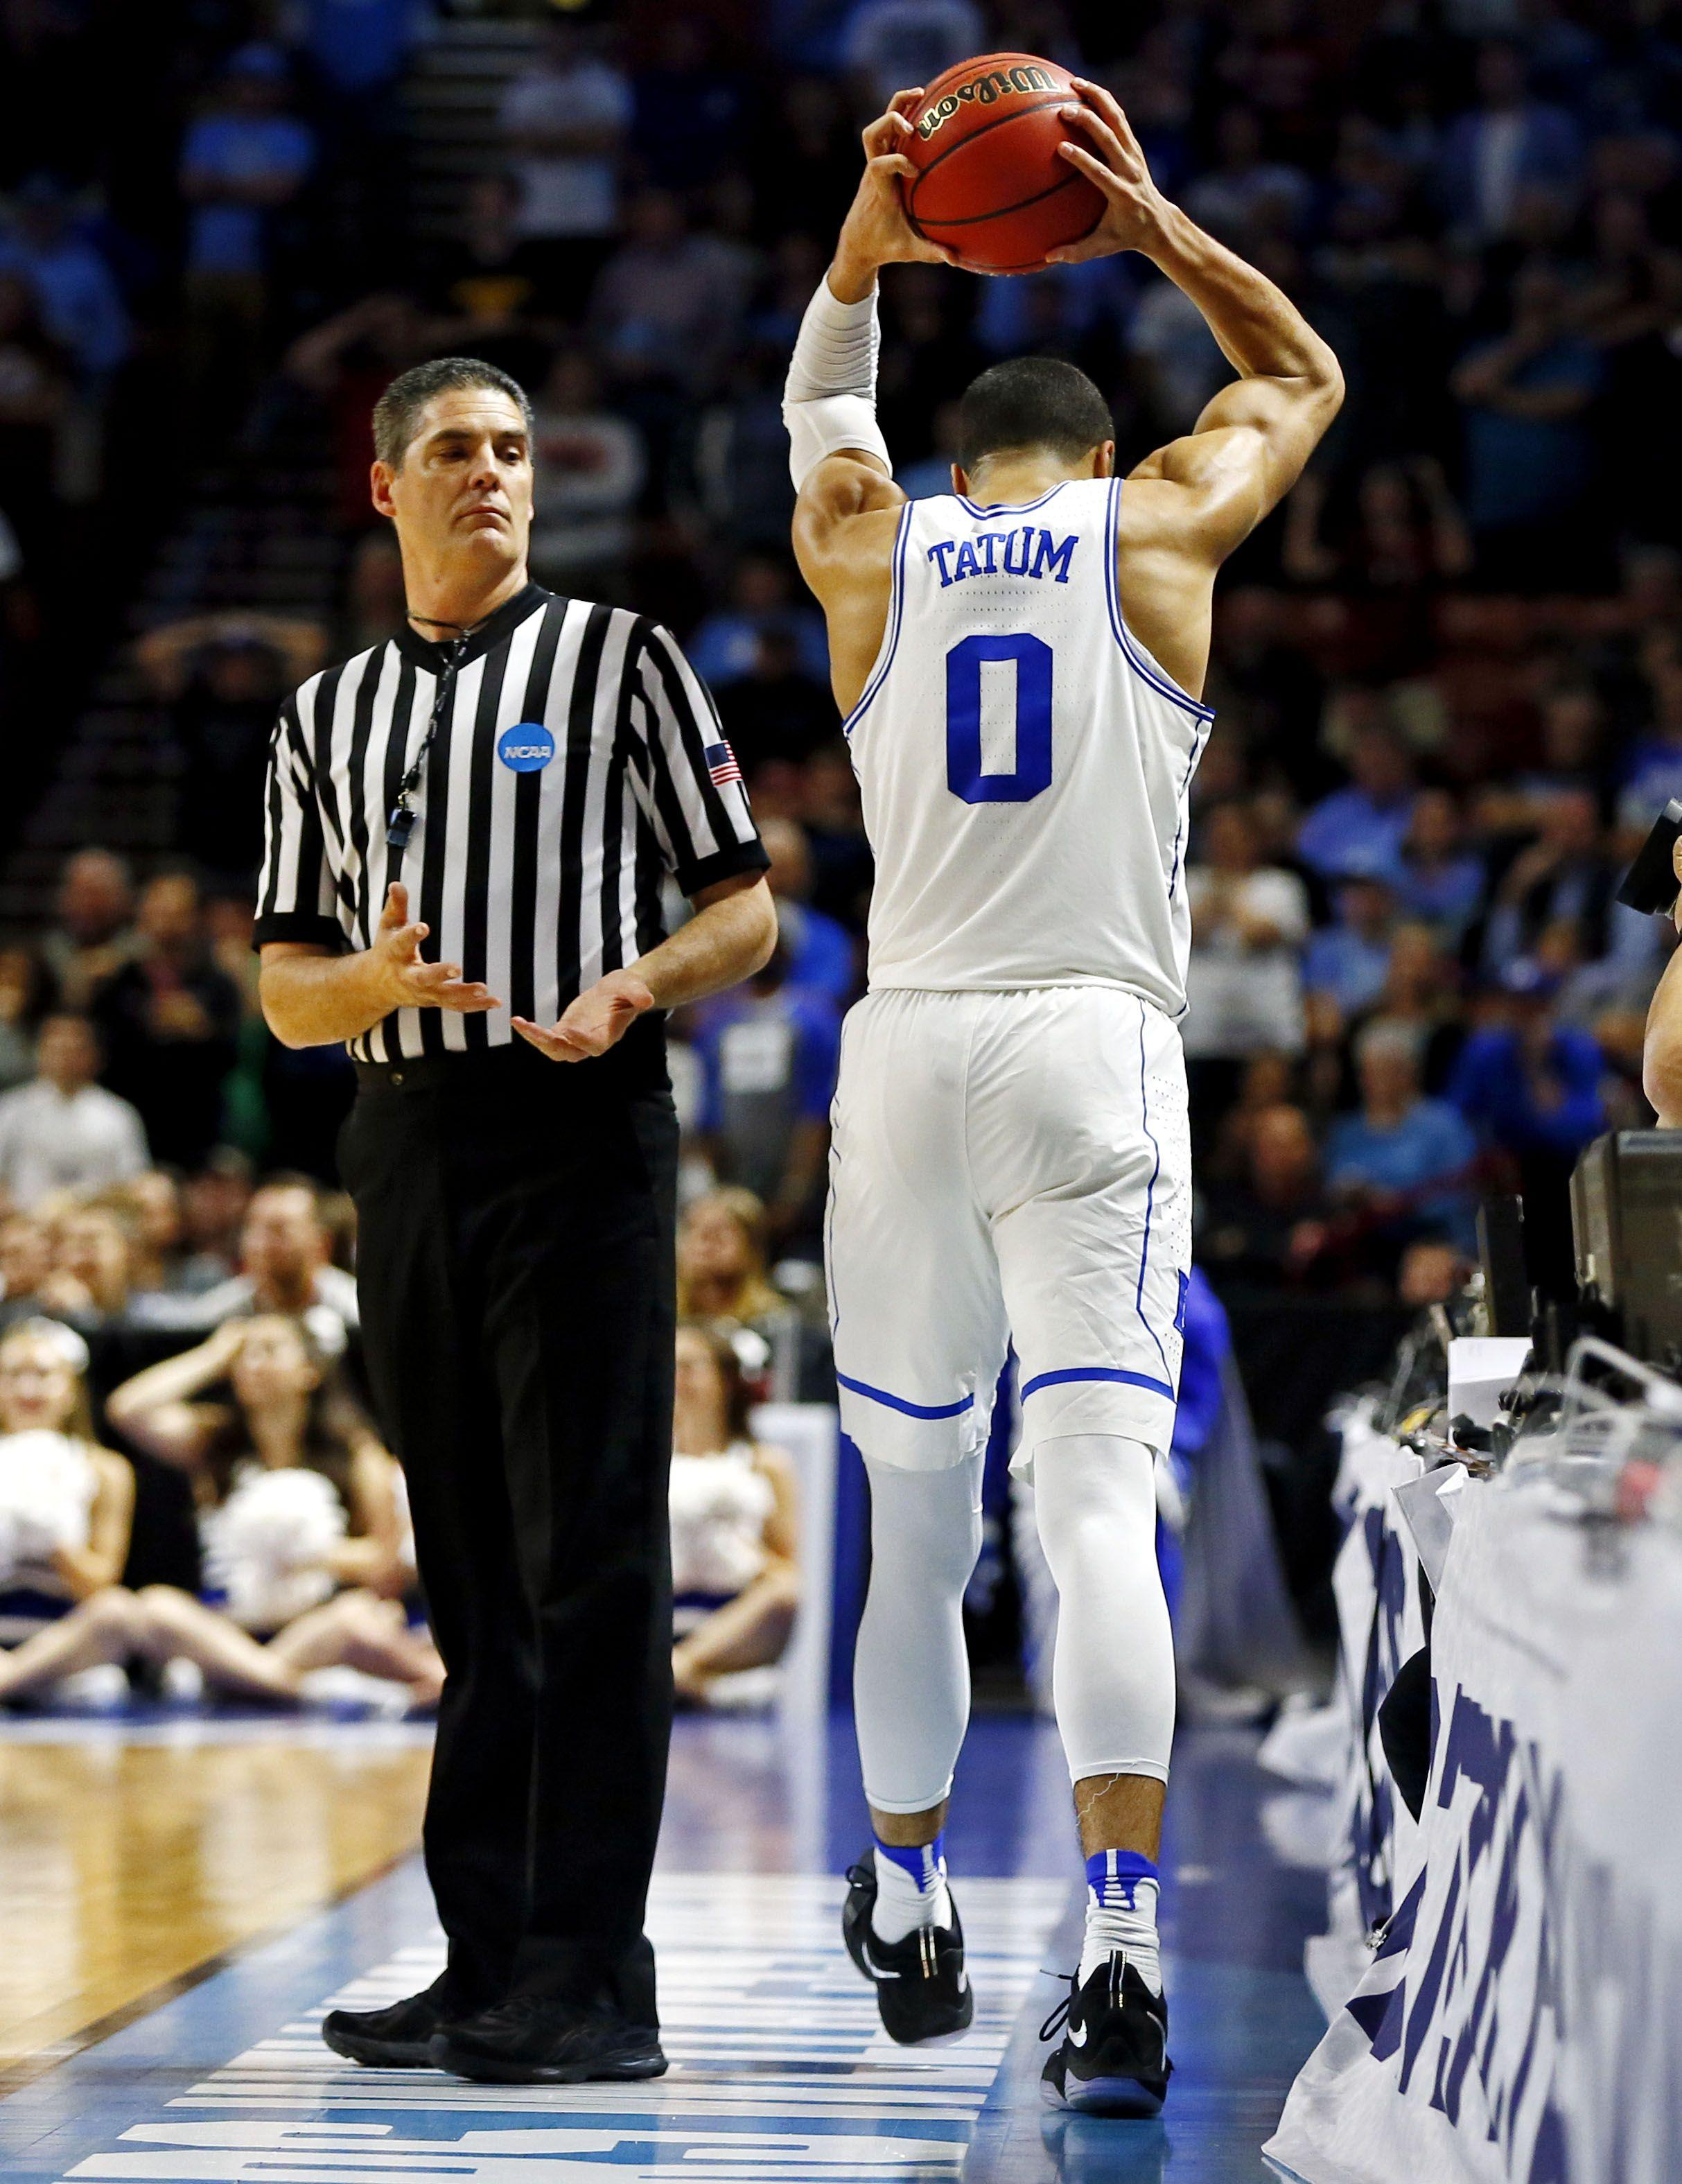 NBA Draft: Basketball took Jayson Tatum from the shadows to the